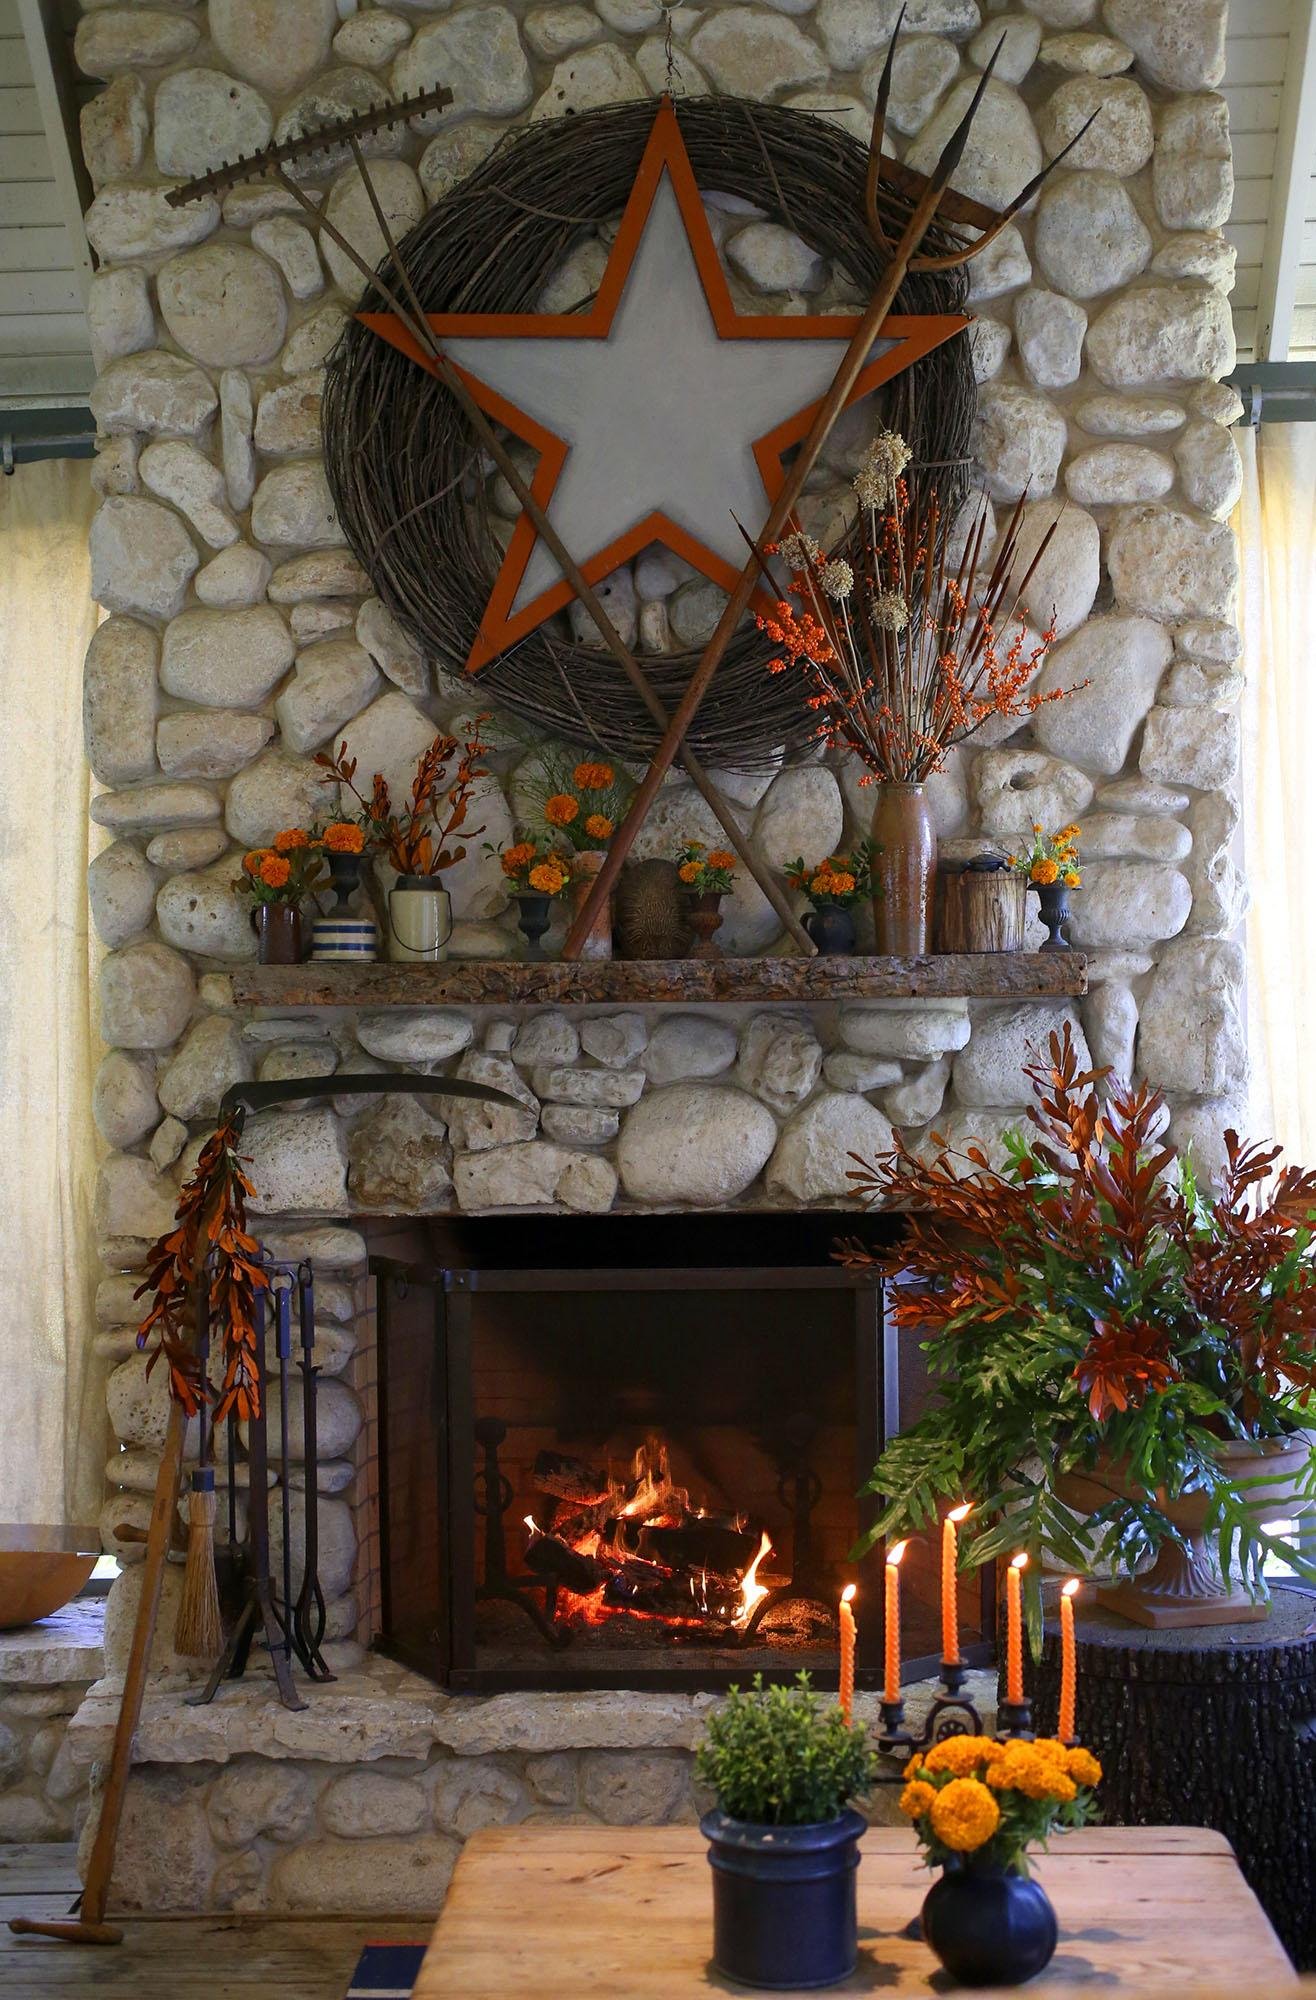 Http Www Expressnews Com Lifestyle Home Garden Article Finding Fall In South Texas Through Creative Home 10315731 Php